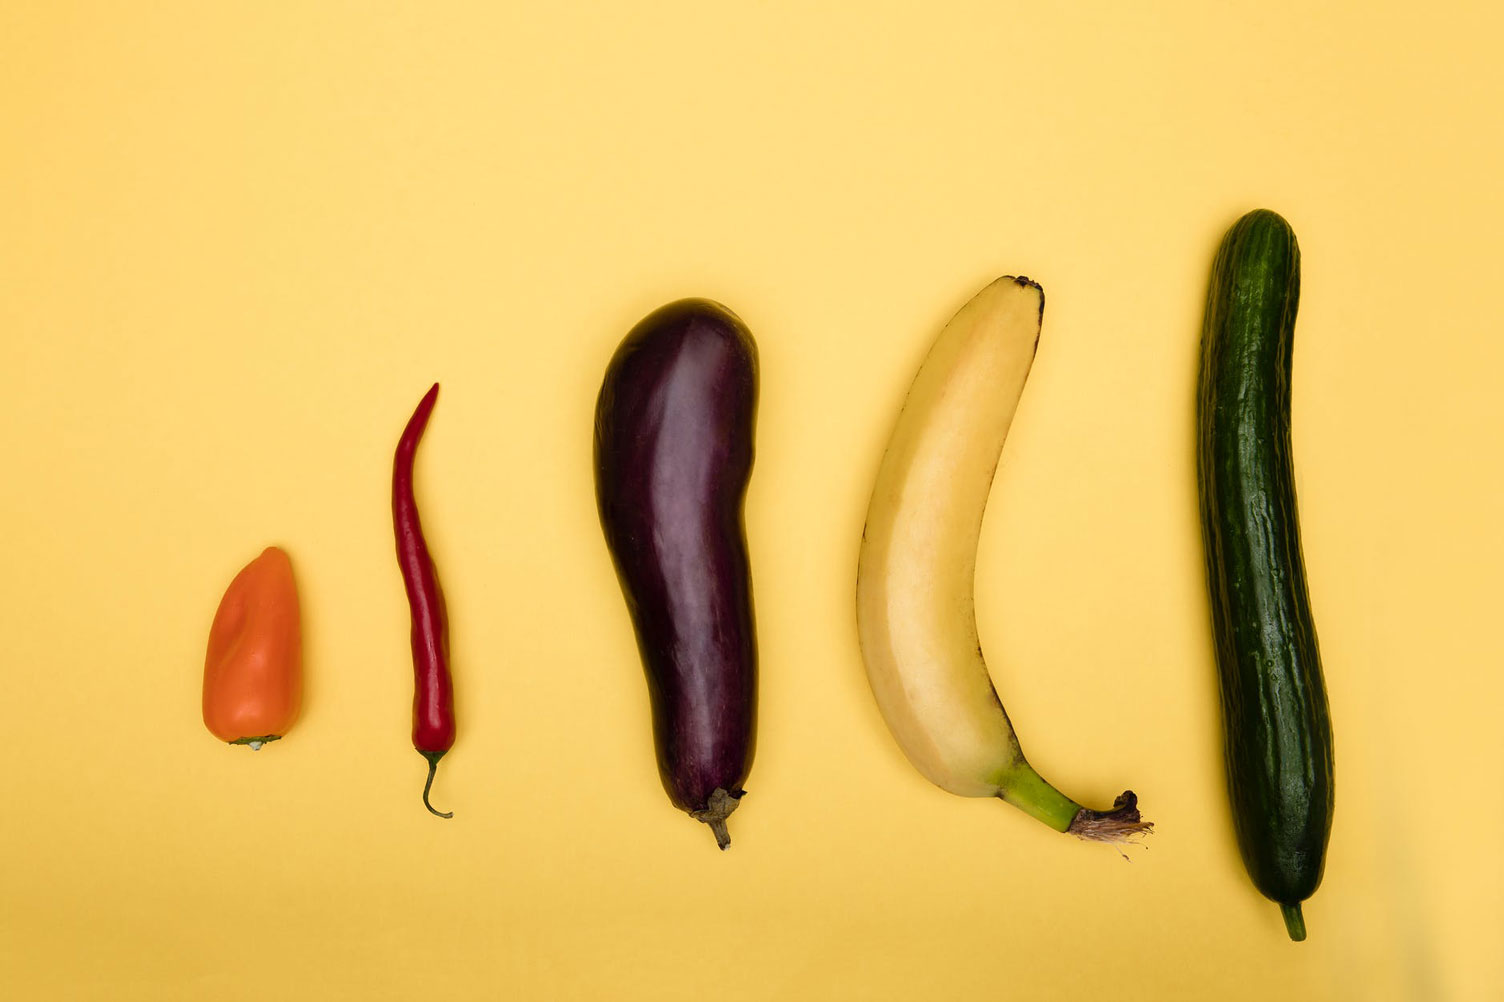 Larger Penis Shown by Fruits